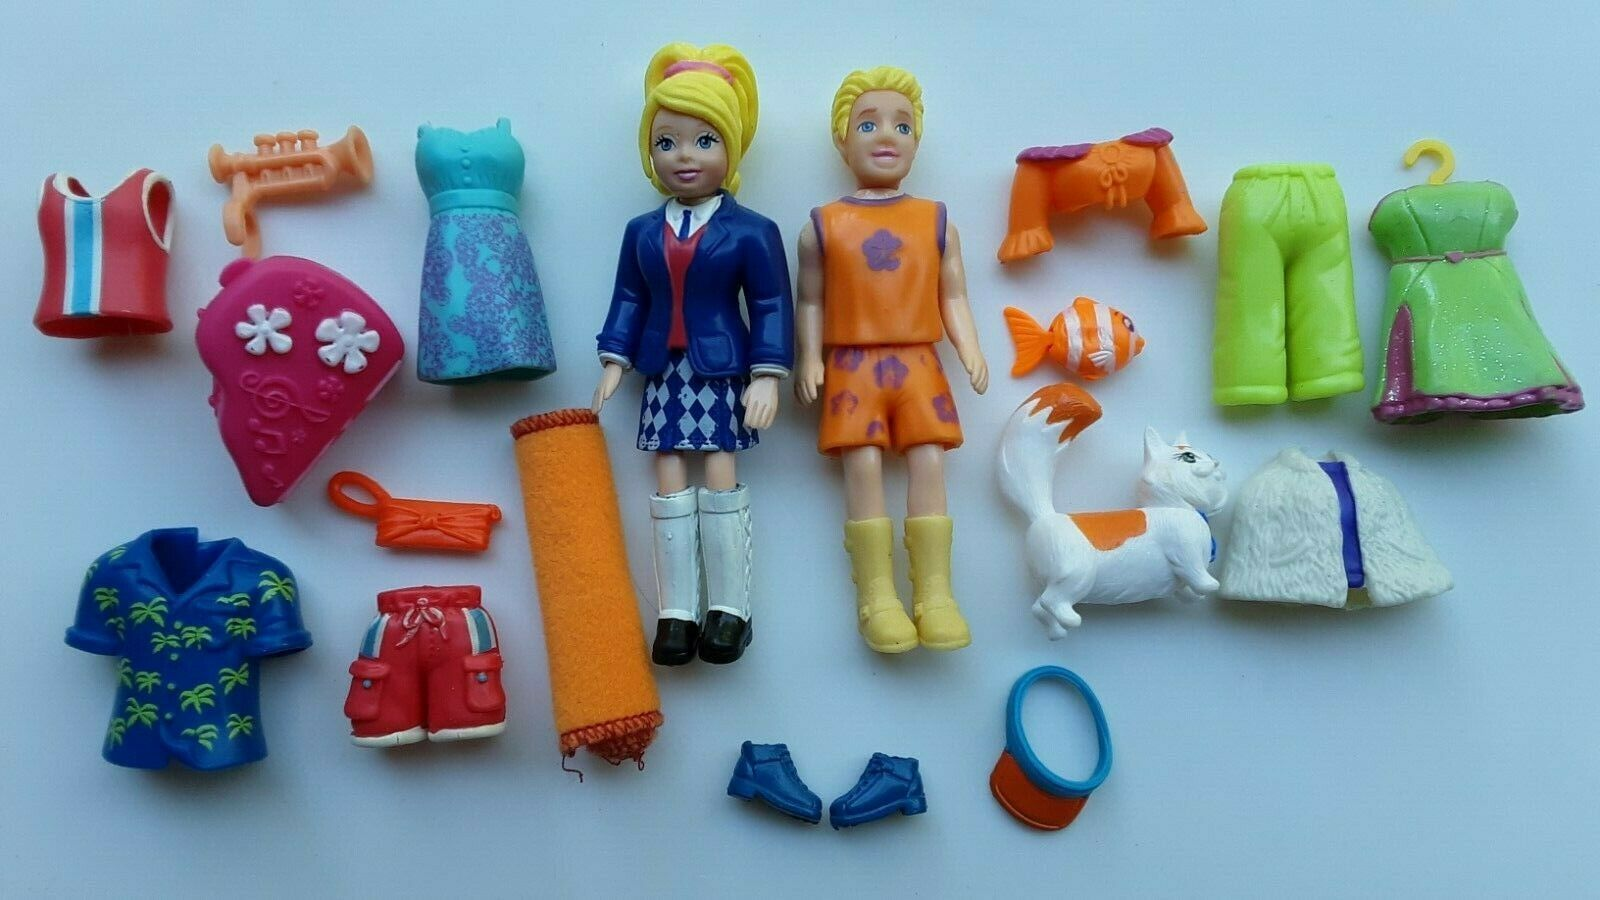 Polly Pocket Dolls and Jazz Accessories Clothing #5 - $21.04